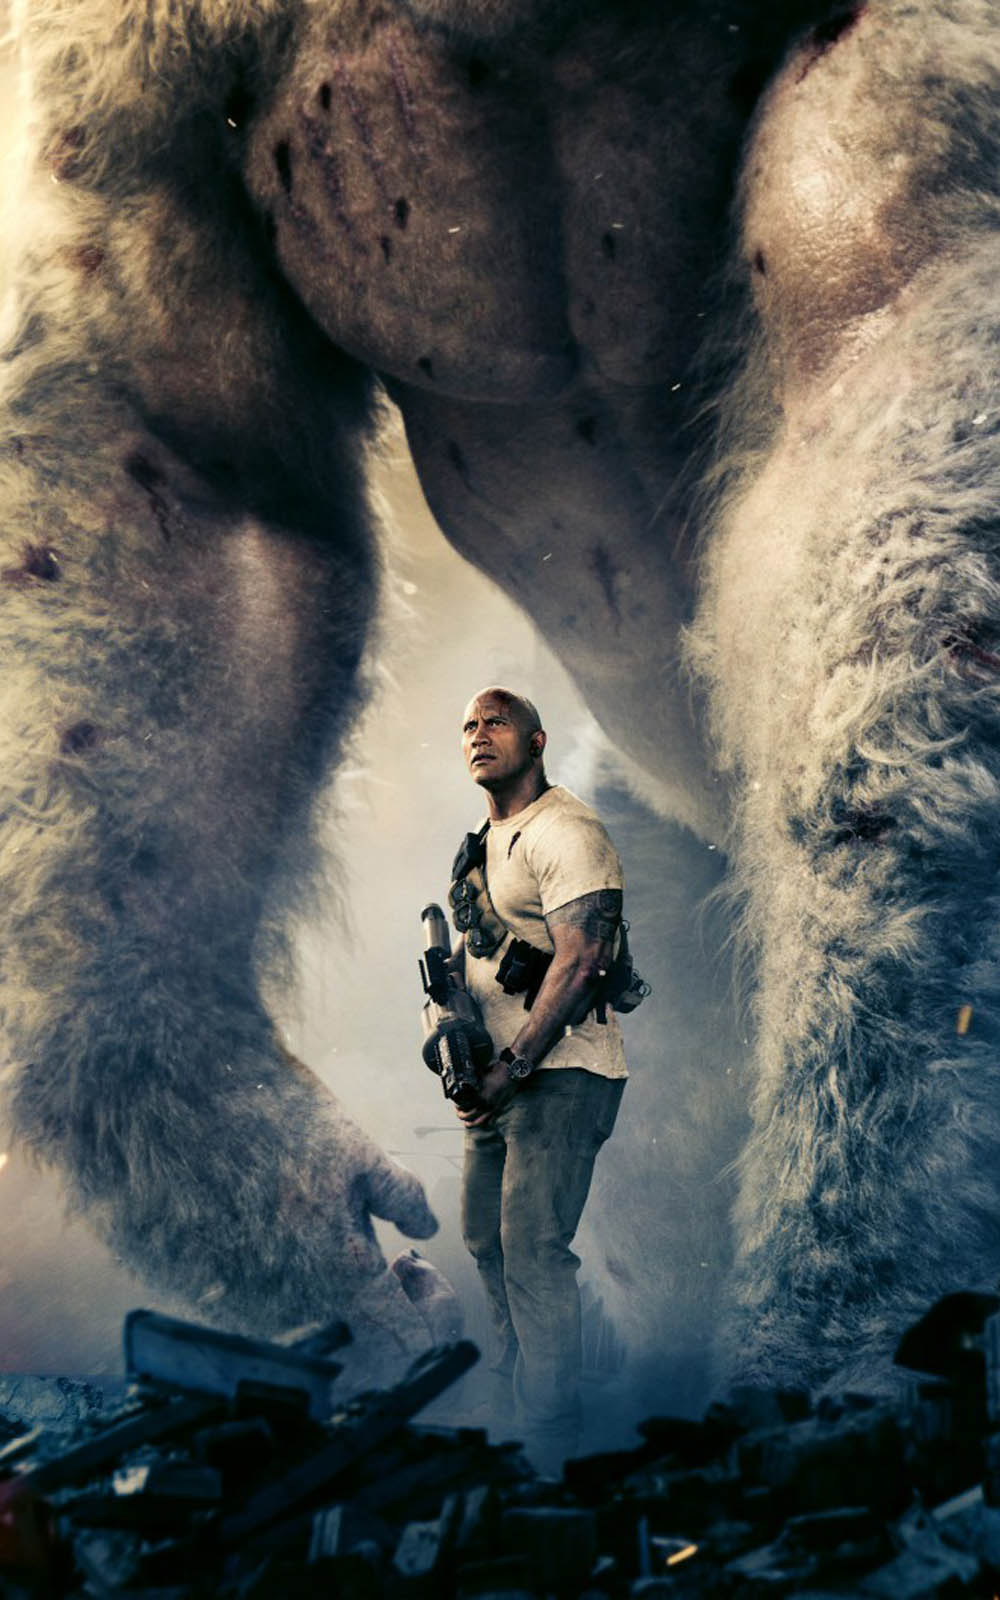 rampage 2018 movie hd mobile wallpaper - download free 100% pure hd